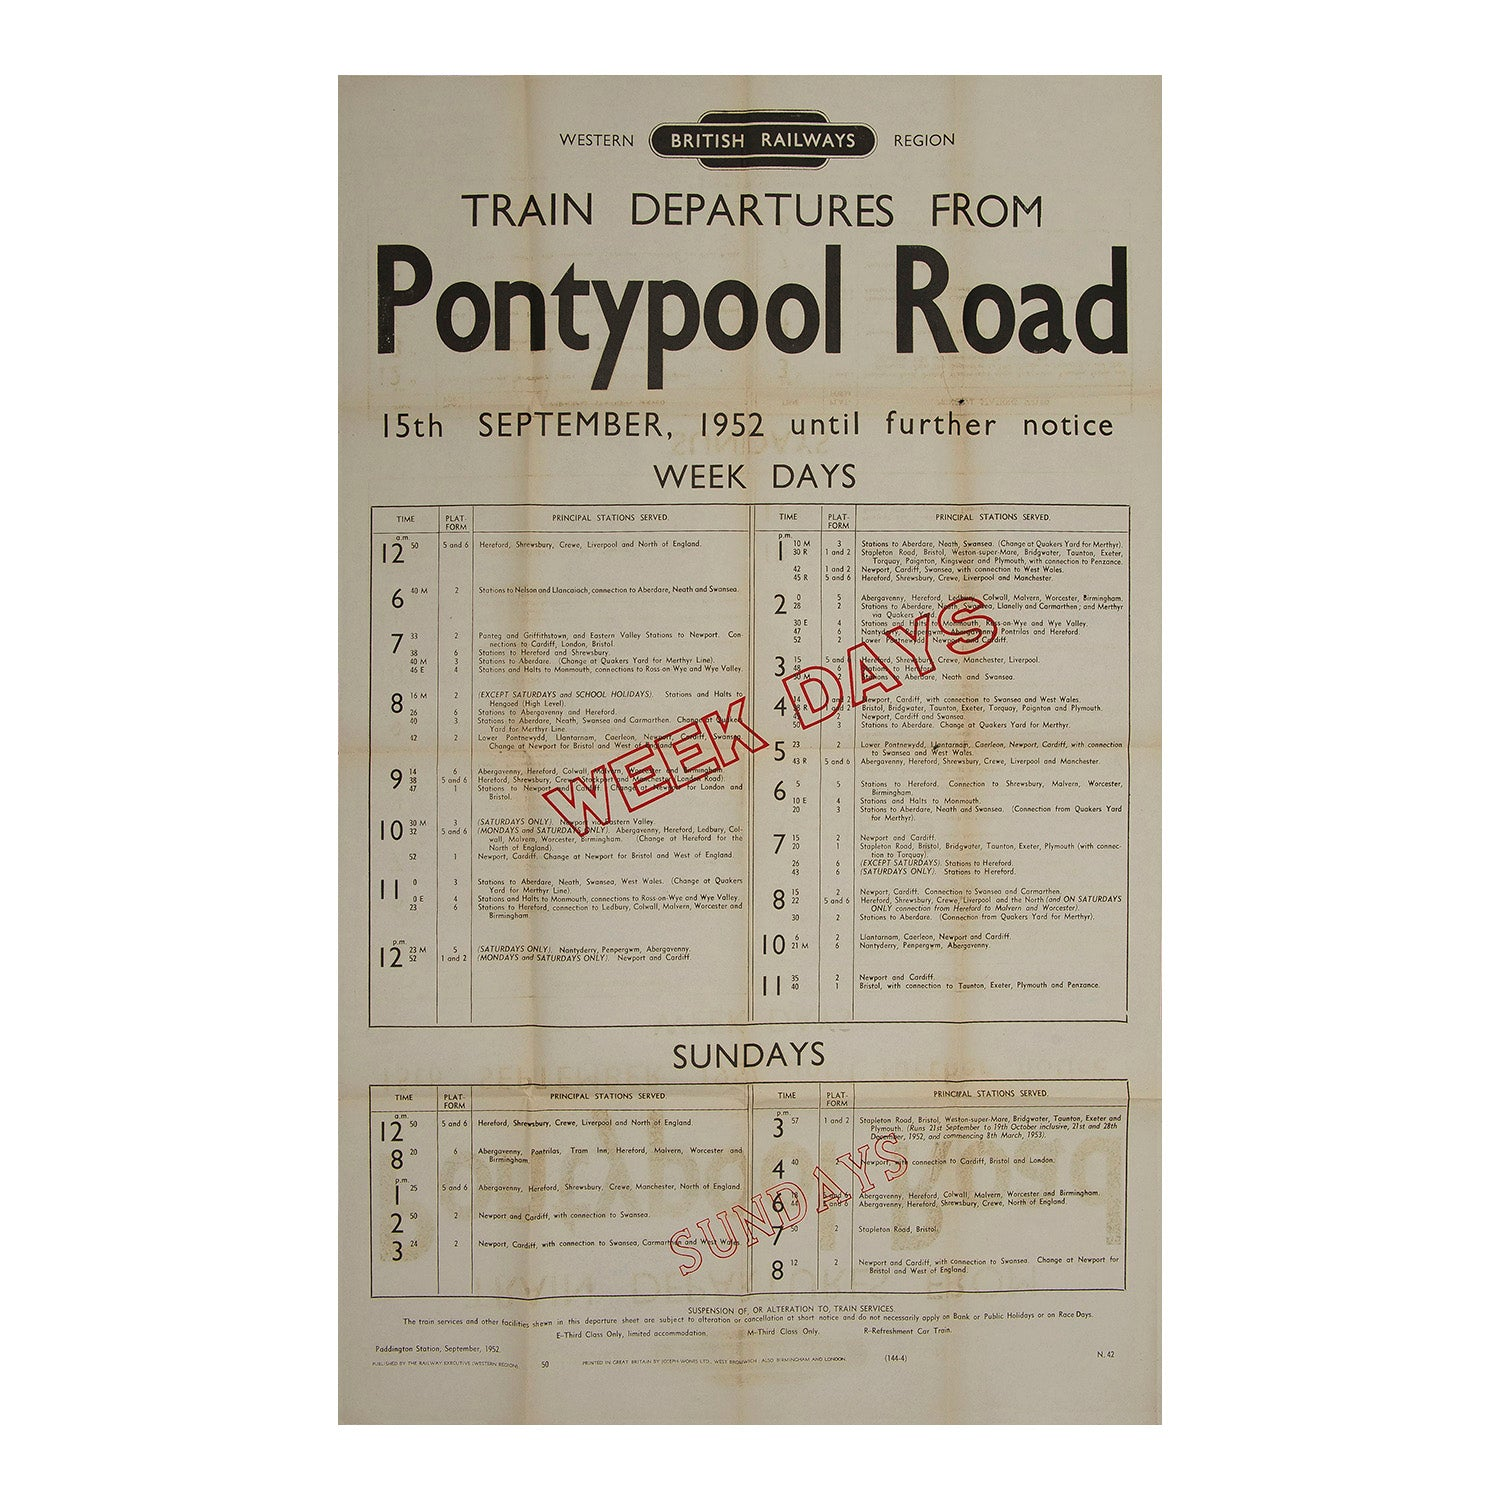 Train Departures from Pontypool Road